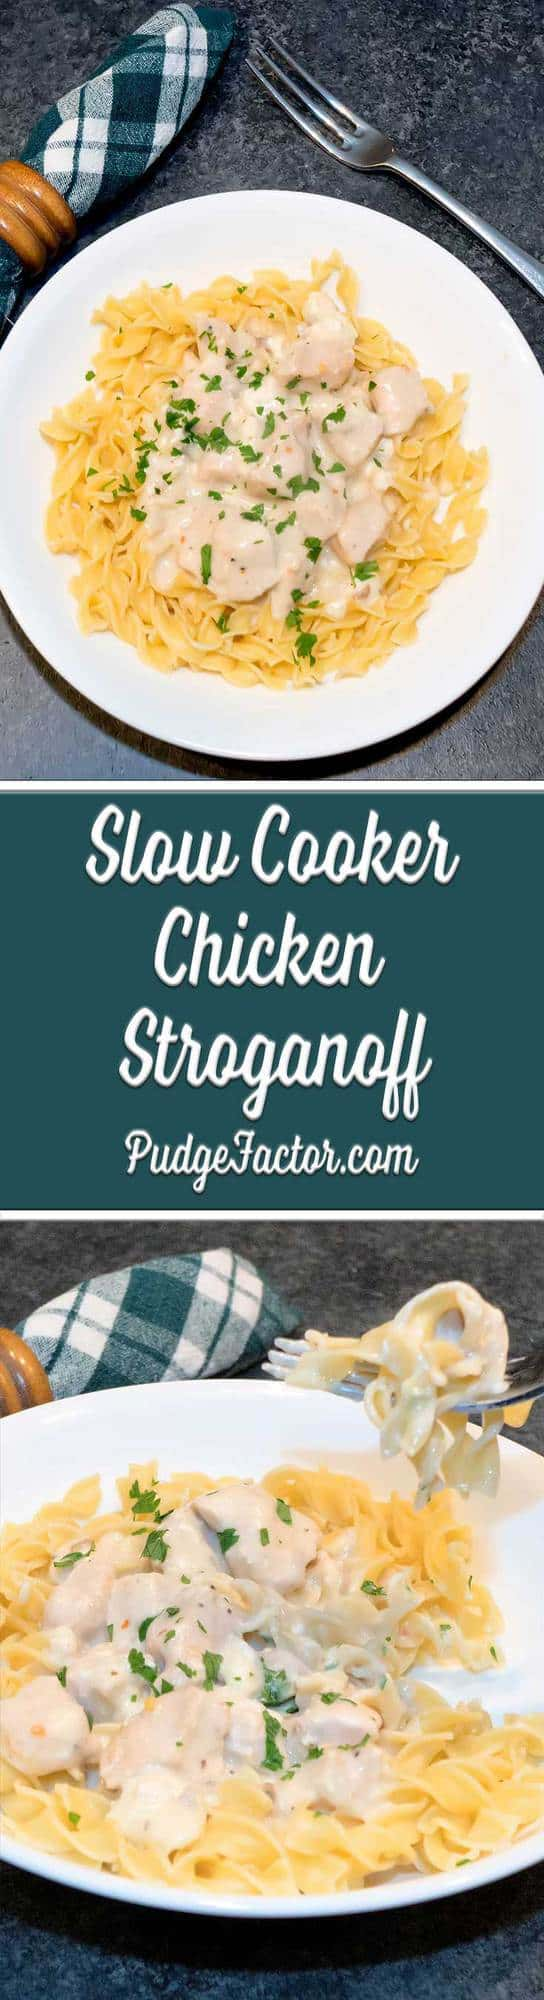 Slow Cooker Chicken Stroganoff - succulent chicken pieces cooked in an amazing sauce with just a hint of wine and served over egg noodles.